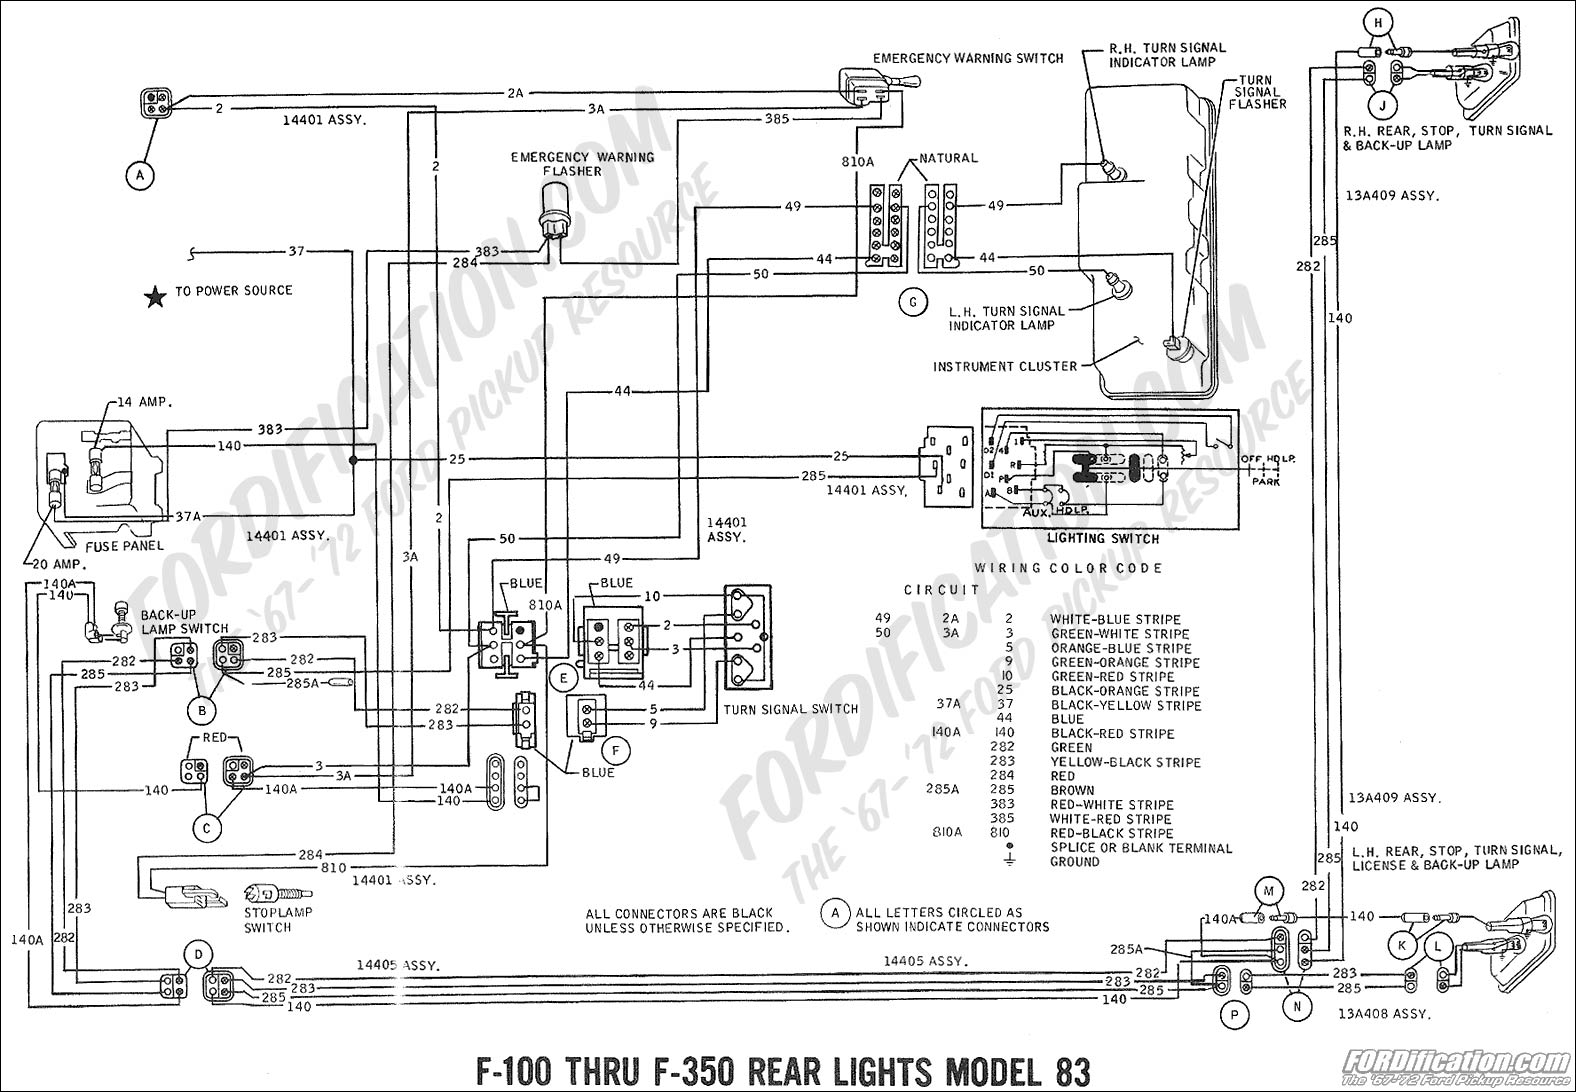 wiring_69rearlights mdl83 2 1977 ford f100 alternator wiring diagram wiring diagram and Ford Mirror Wiring Harness at gsmx.co